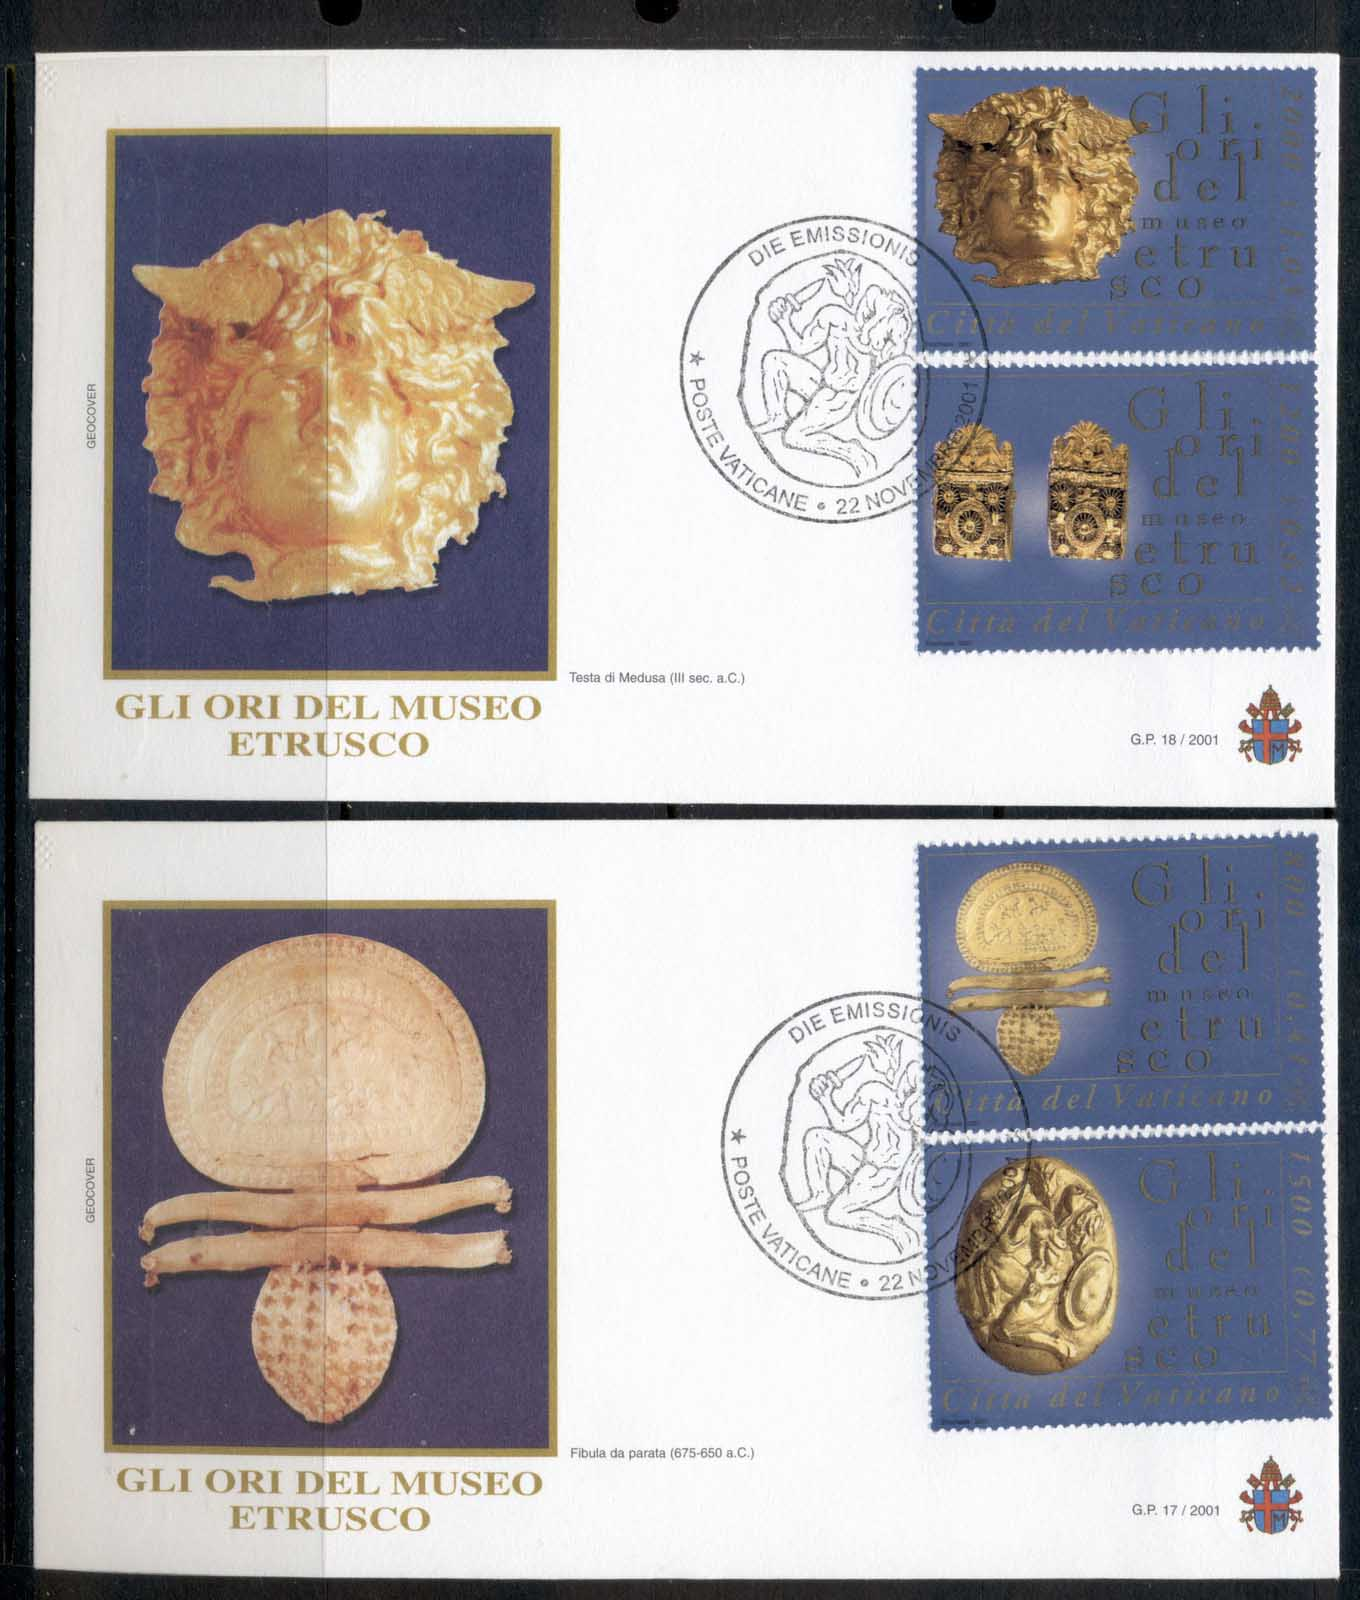 Vatican 2001 Etruscan Museum Gold Objects 2x FDC